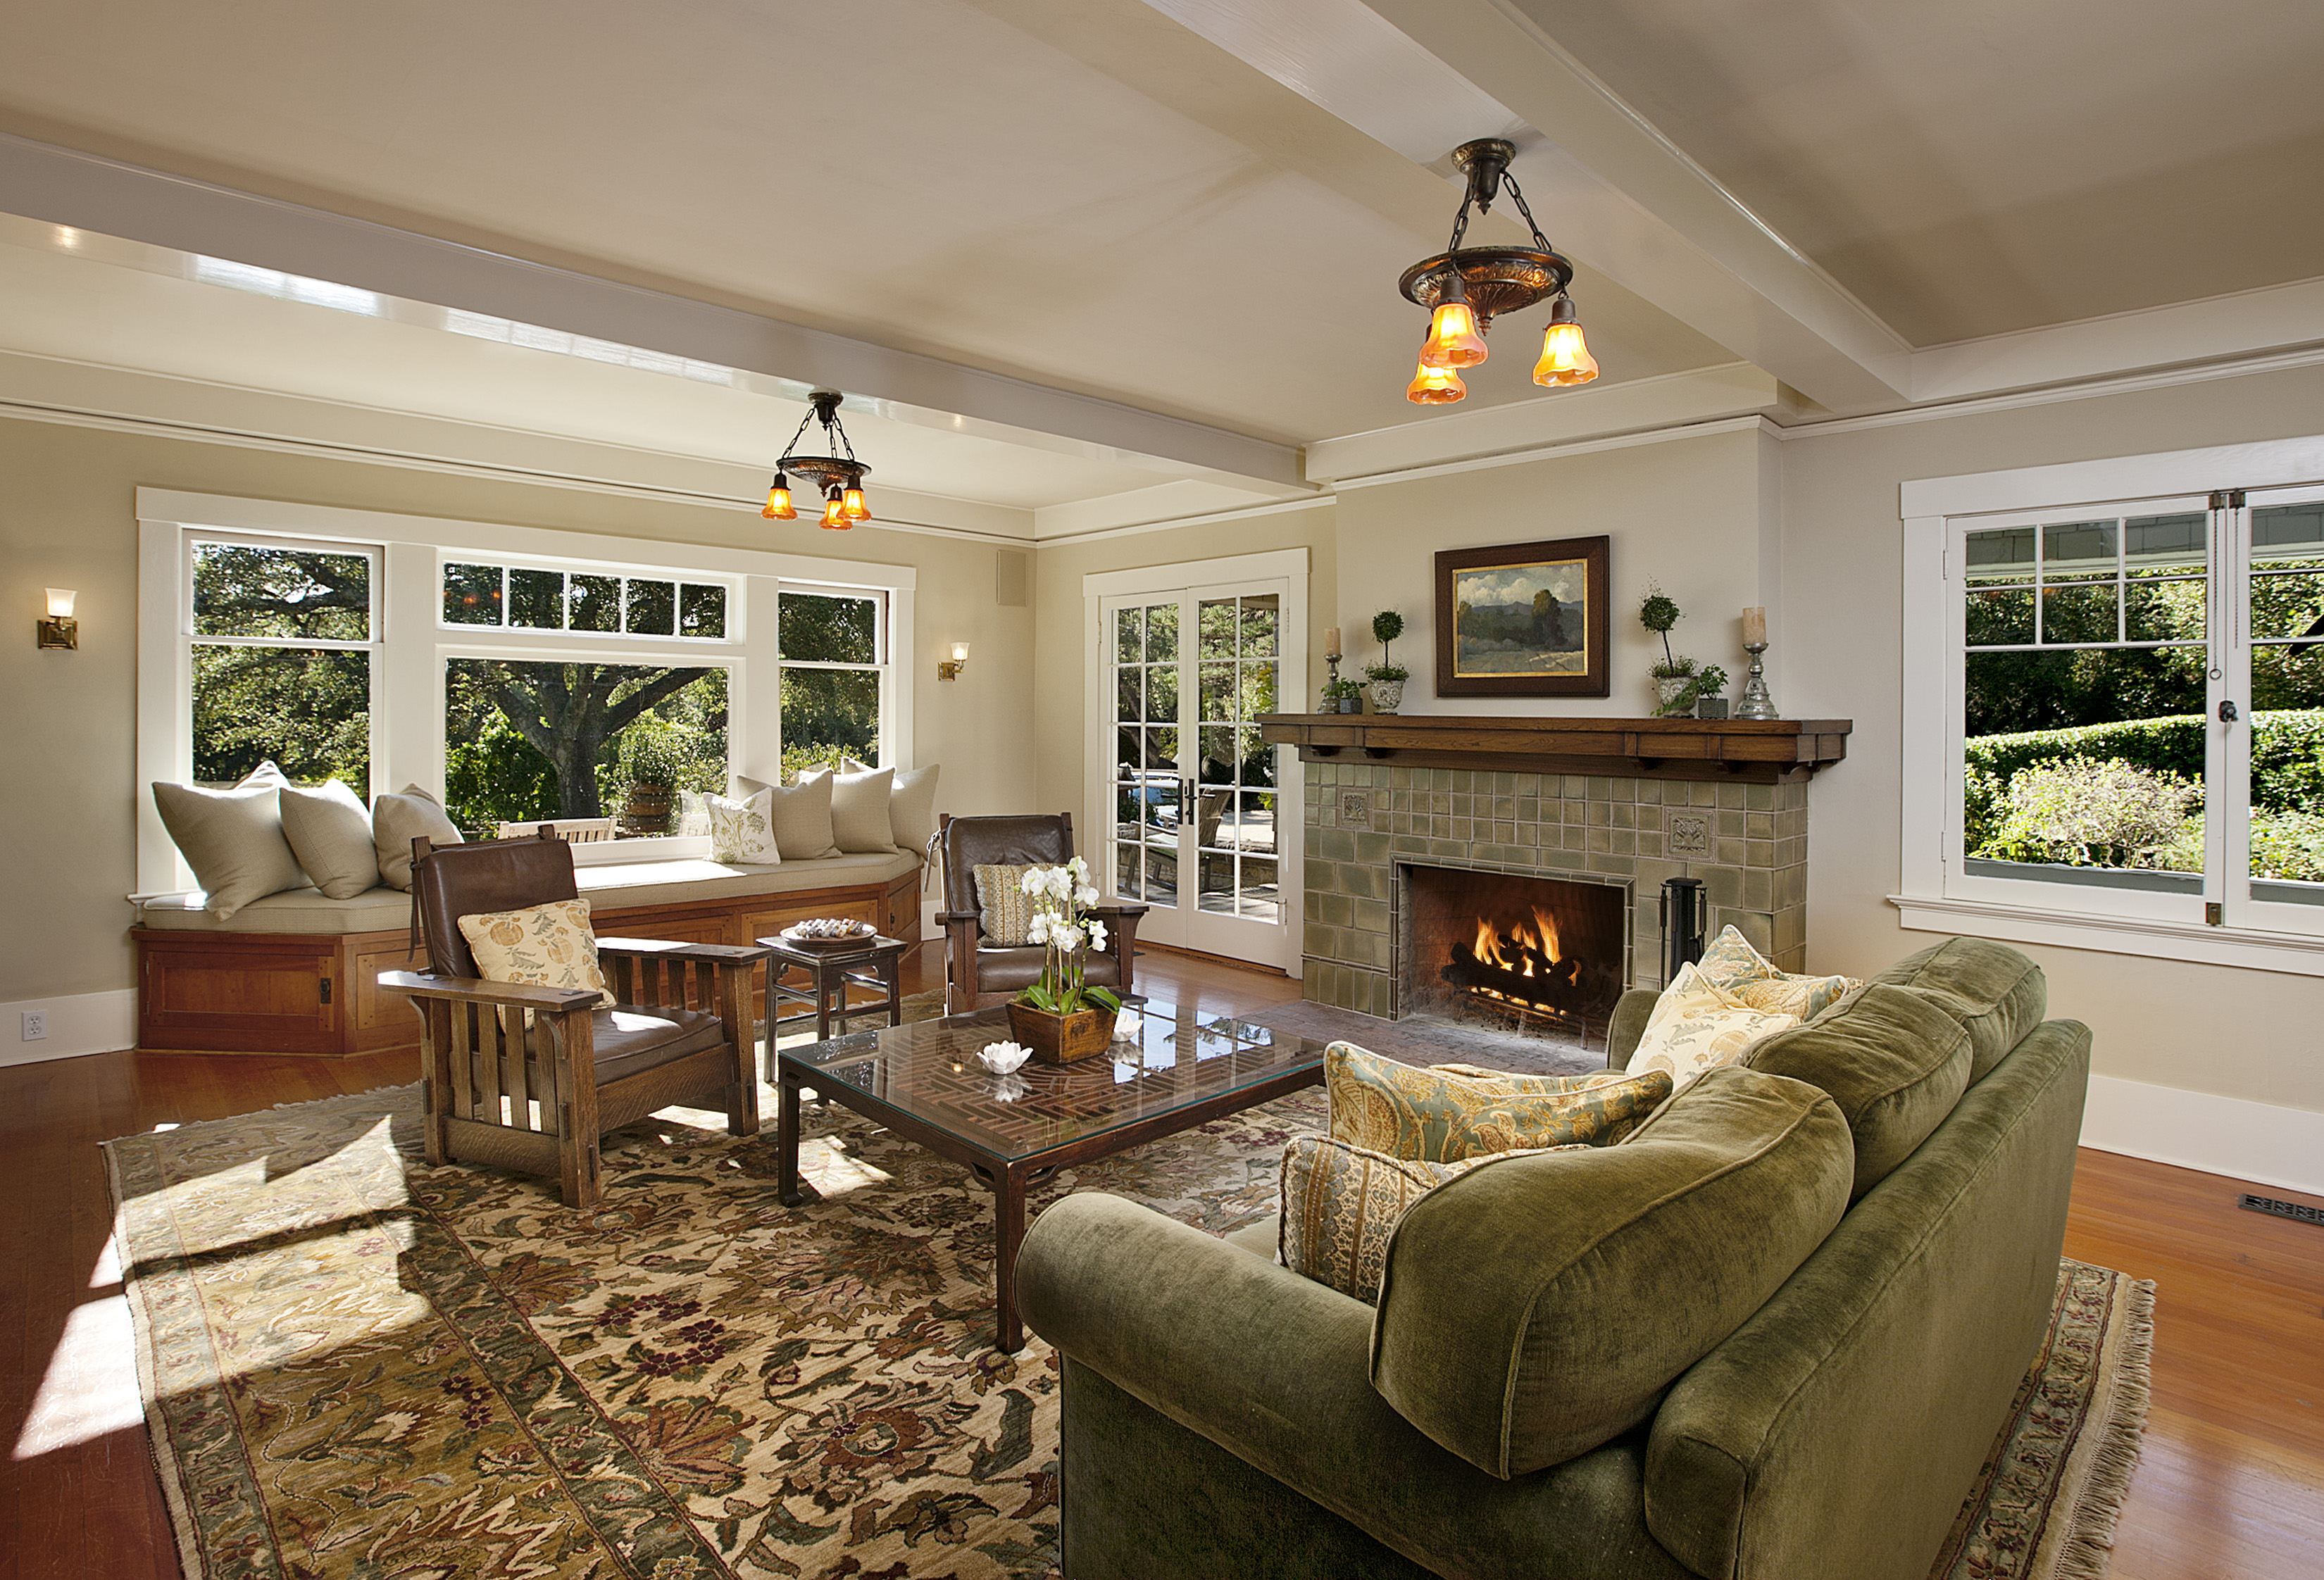 Popular home styles for 2012 montecito real estate for Home interior drawing room